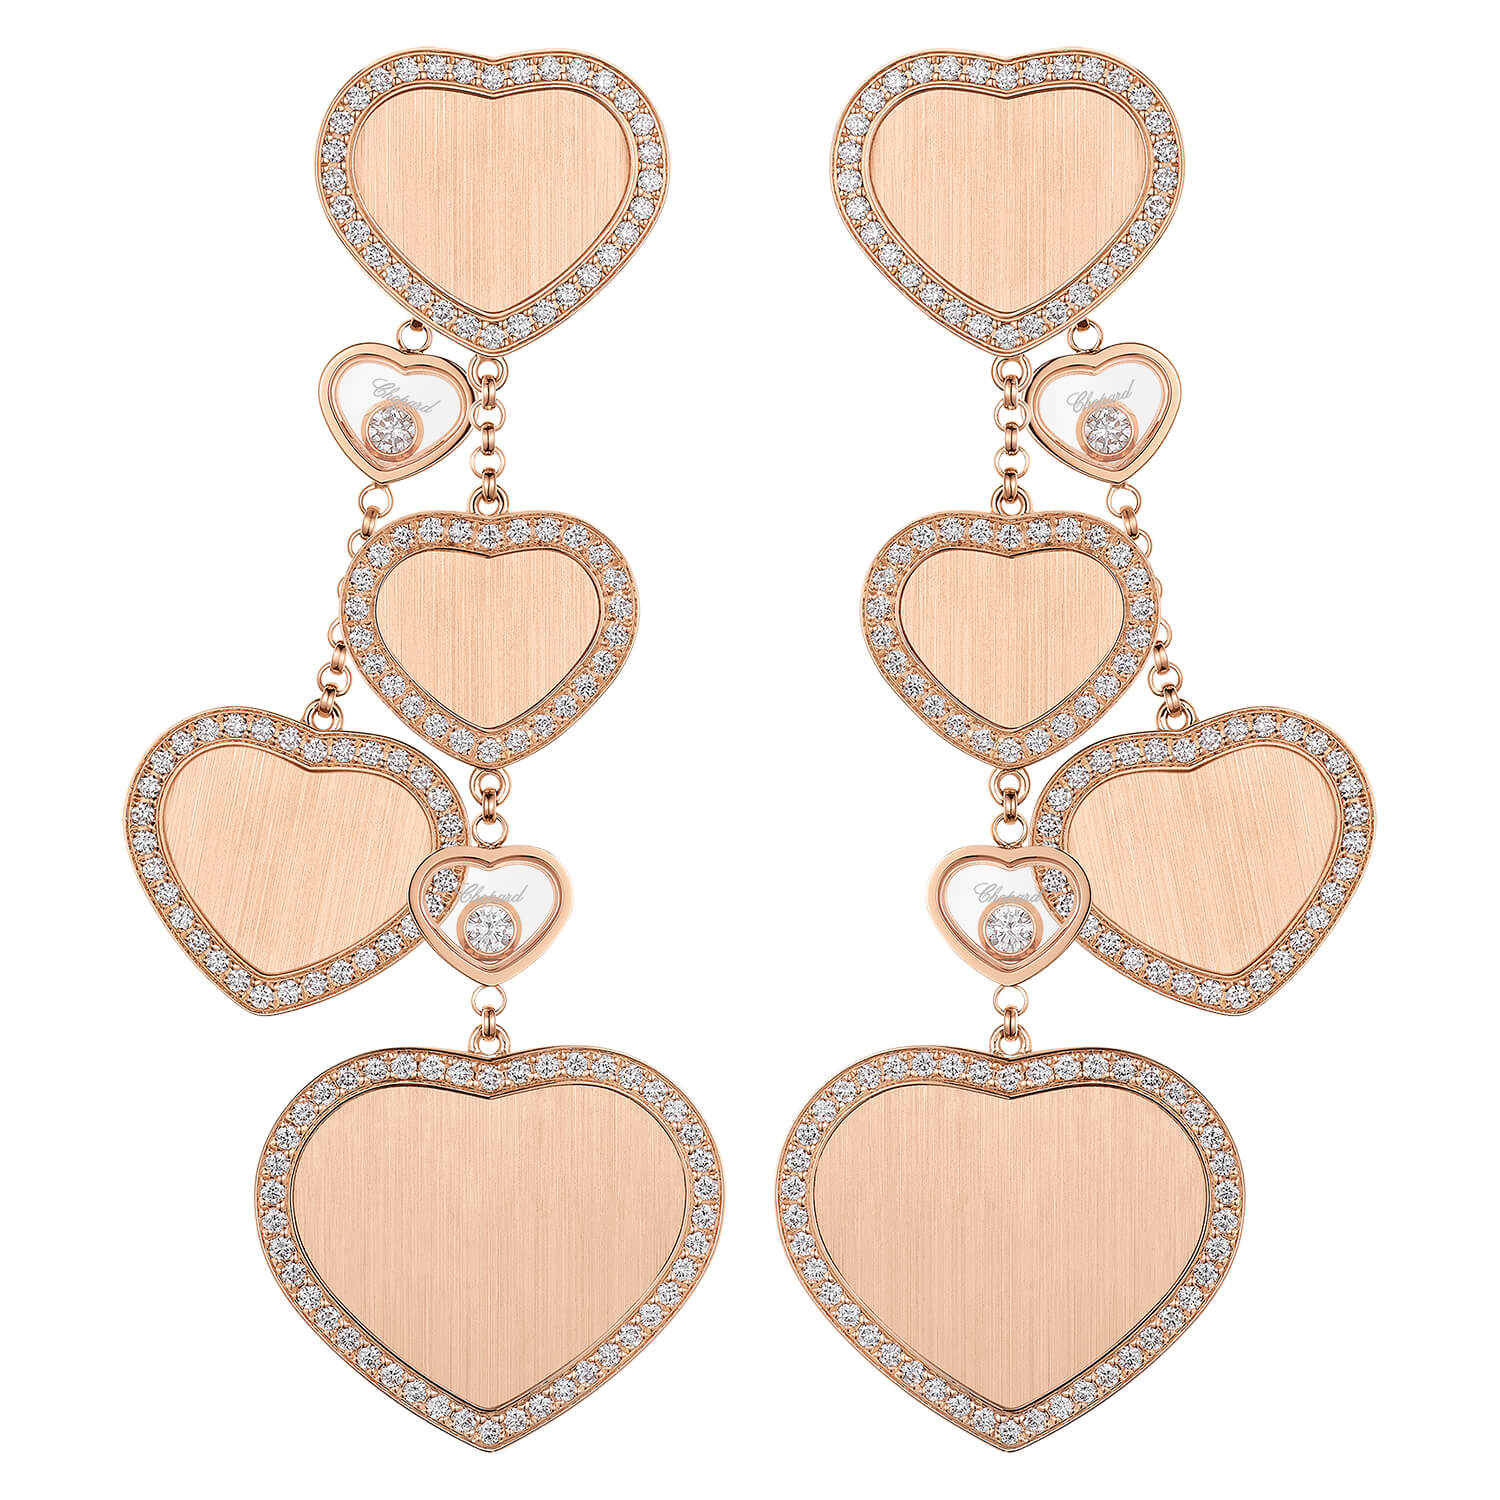 Chopard Limited Edition James Bond 007 Happy Hearts Diamond Earrings